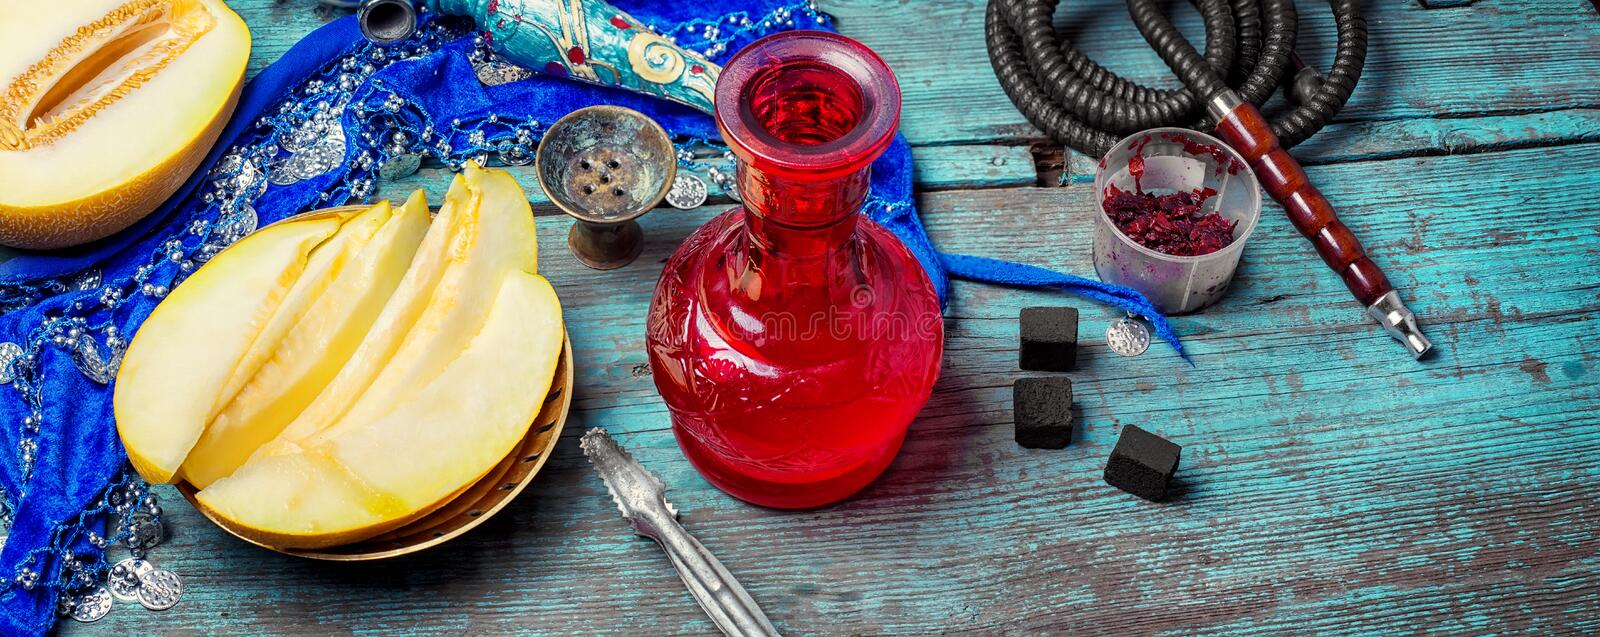 Hookah and melon. Melon variety of hookah tobacco and smoking accessories royalty free stock photos